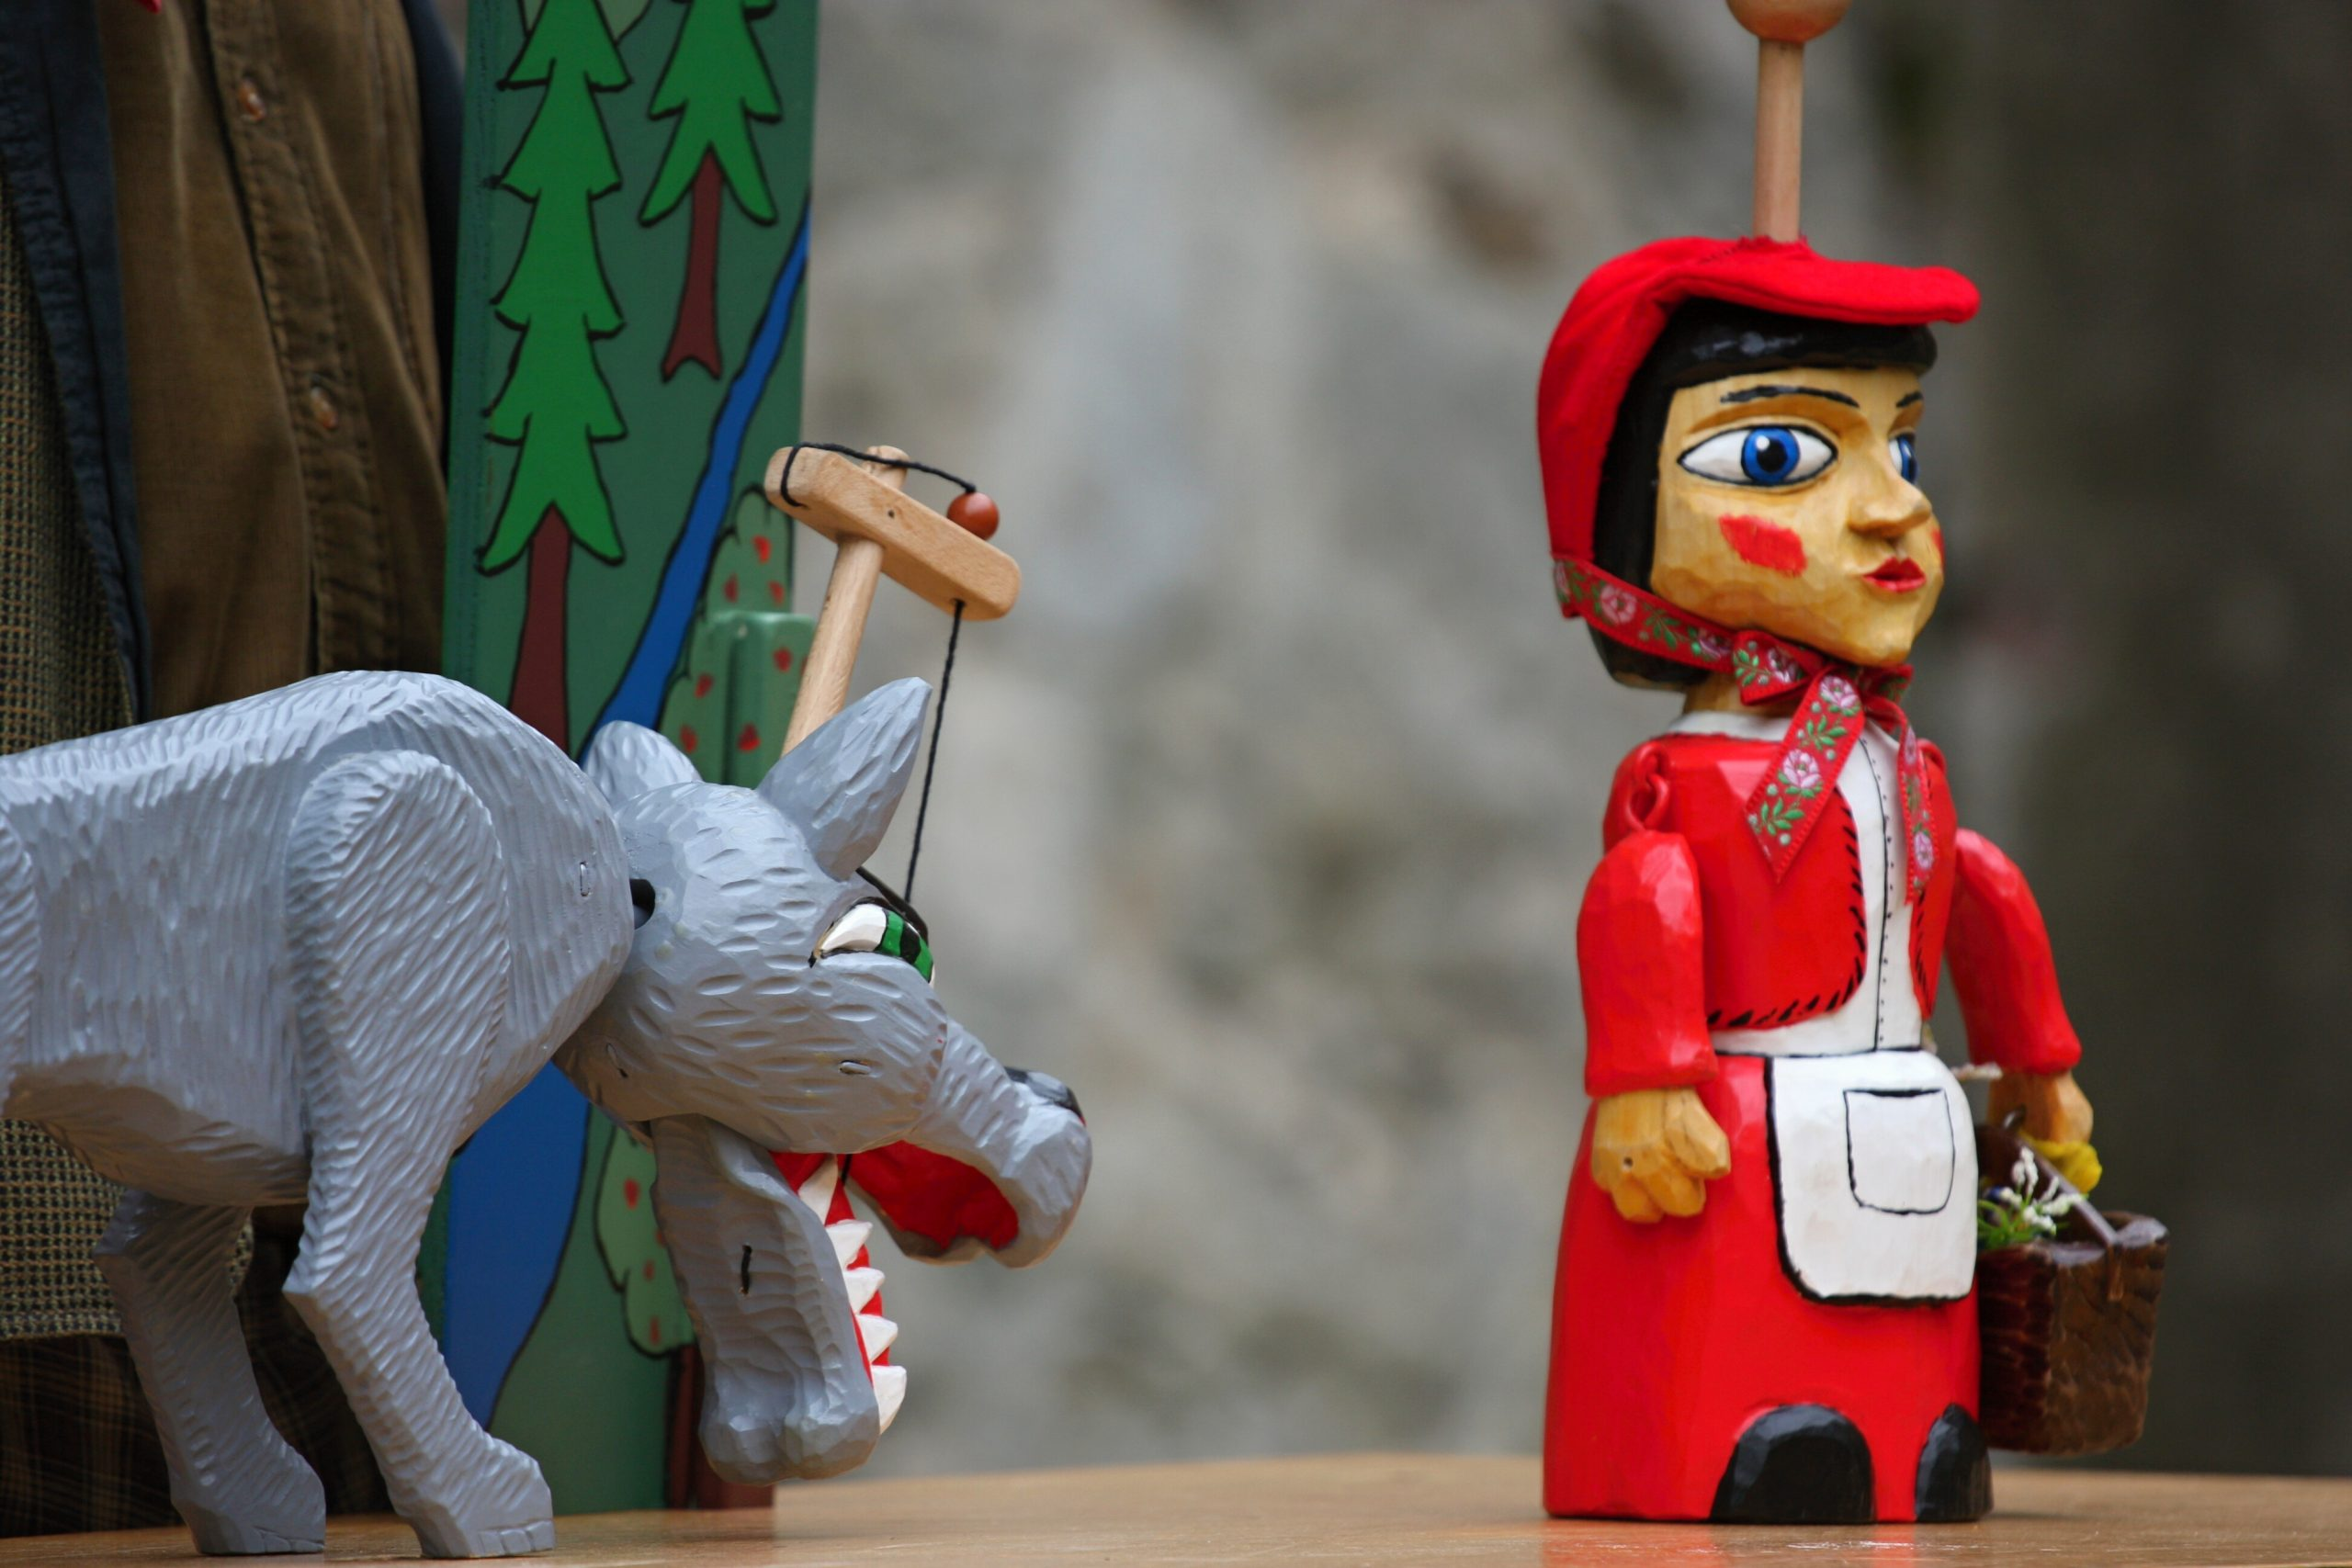 Little Red Riding Hood and the wolf puppets